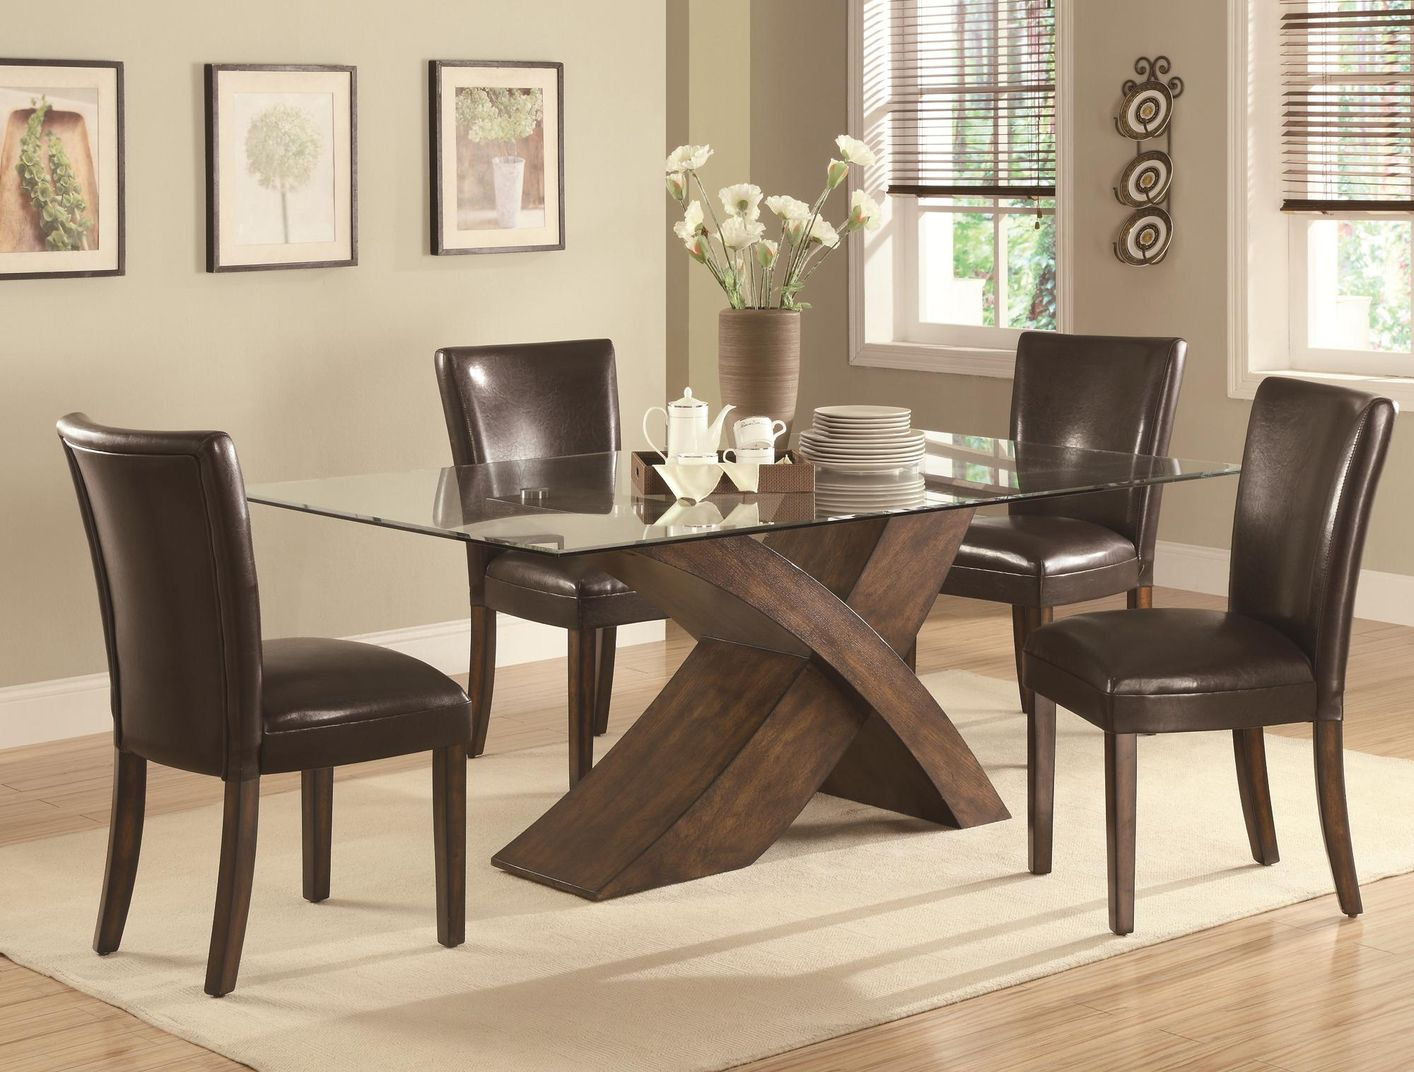 Nessa Deep Brown Wood And Glass Dining Table Set. Nessa Deep Brown Wood And Glass Dining Table Set   Steal A Sofa